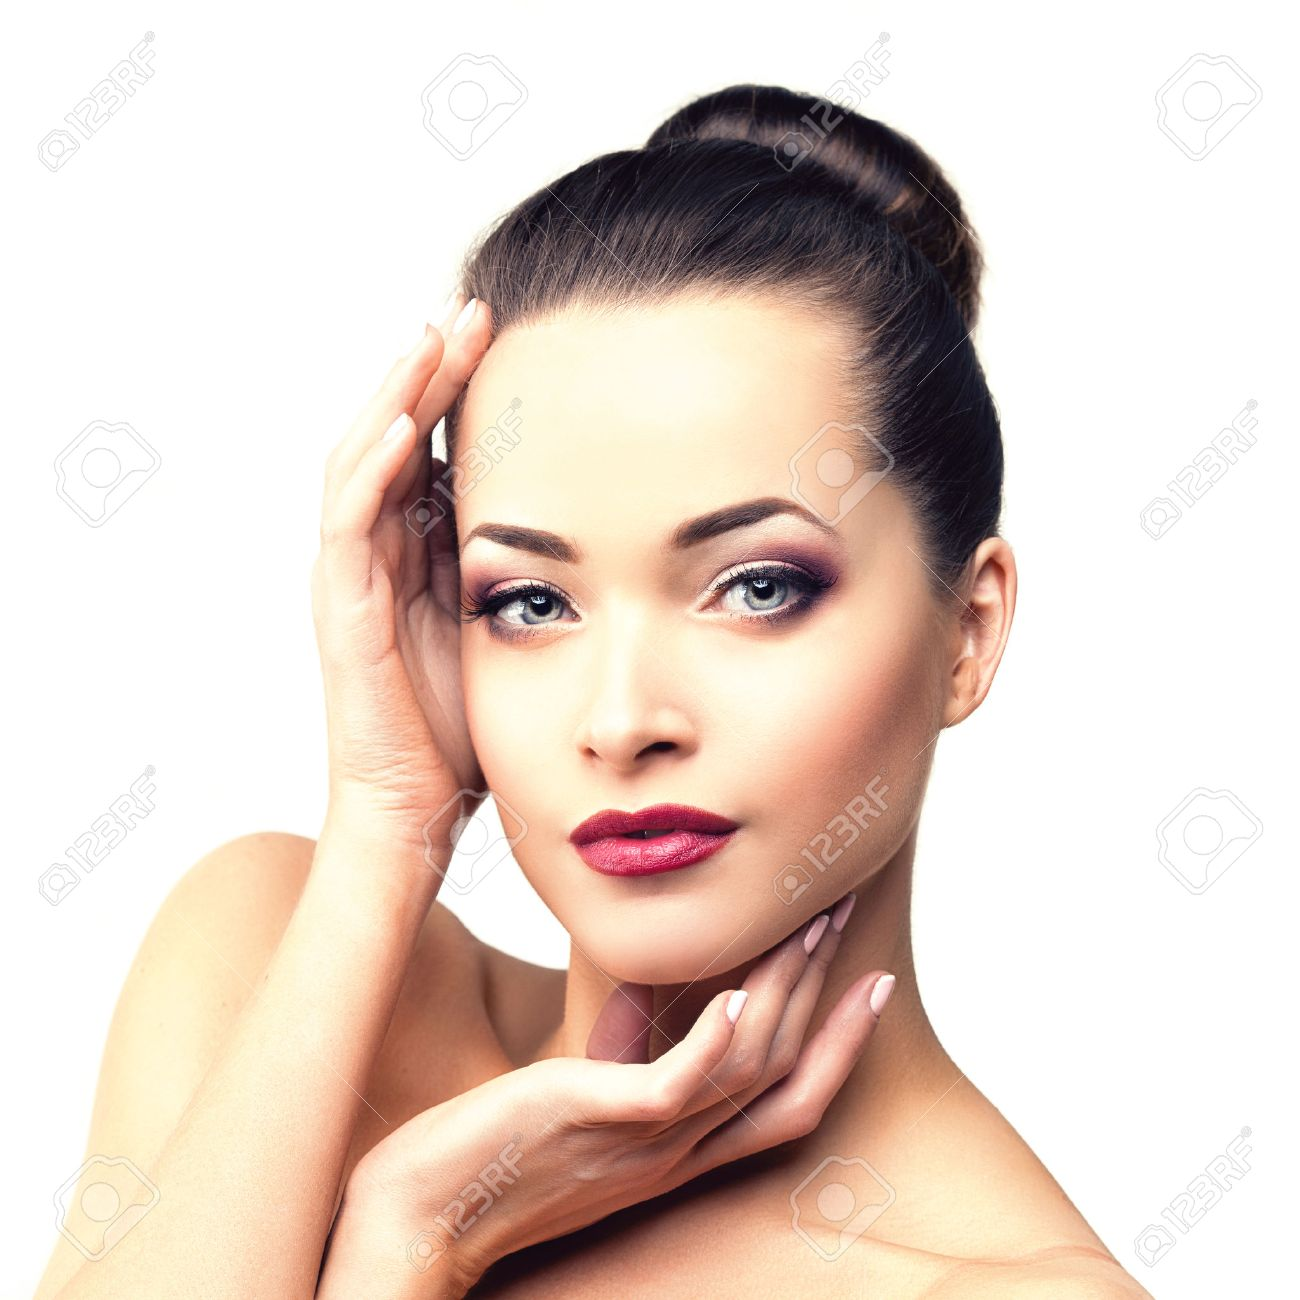 Beautiful Model Woman In Beauty Salon Makeup Young Modern Girl Stock Photo Picture And Royalty Free Image Image 51253386